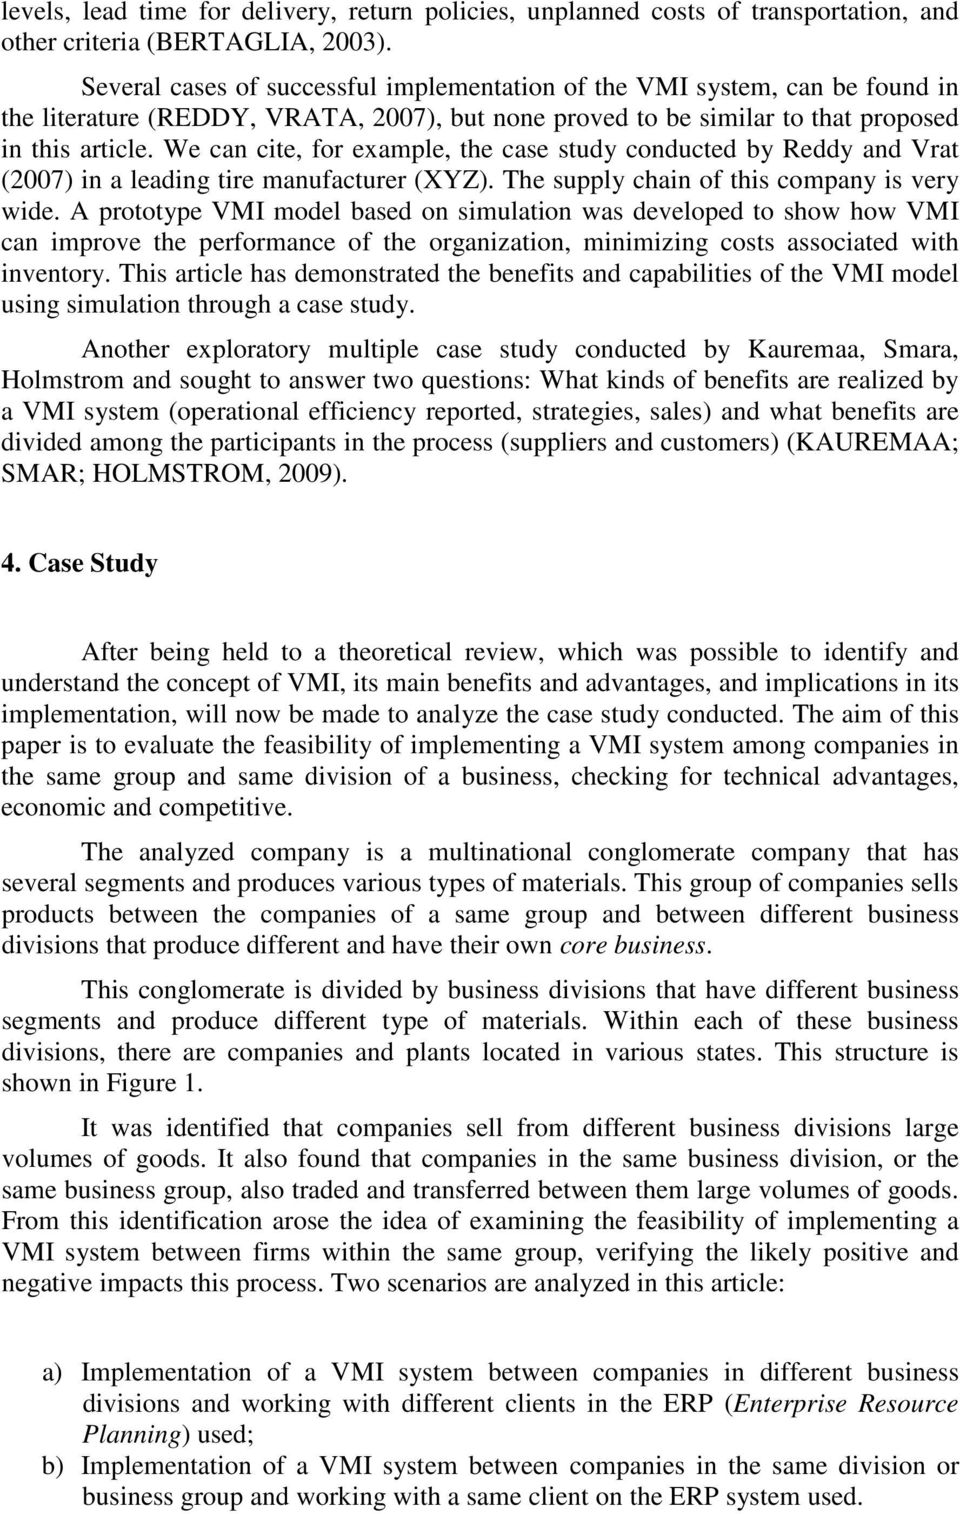 We can cite, for example, the case study conducted by Reddy and Vrat (2007) in a leading tire manufacturer (XYZ). The supply chain of this company is very wide.